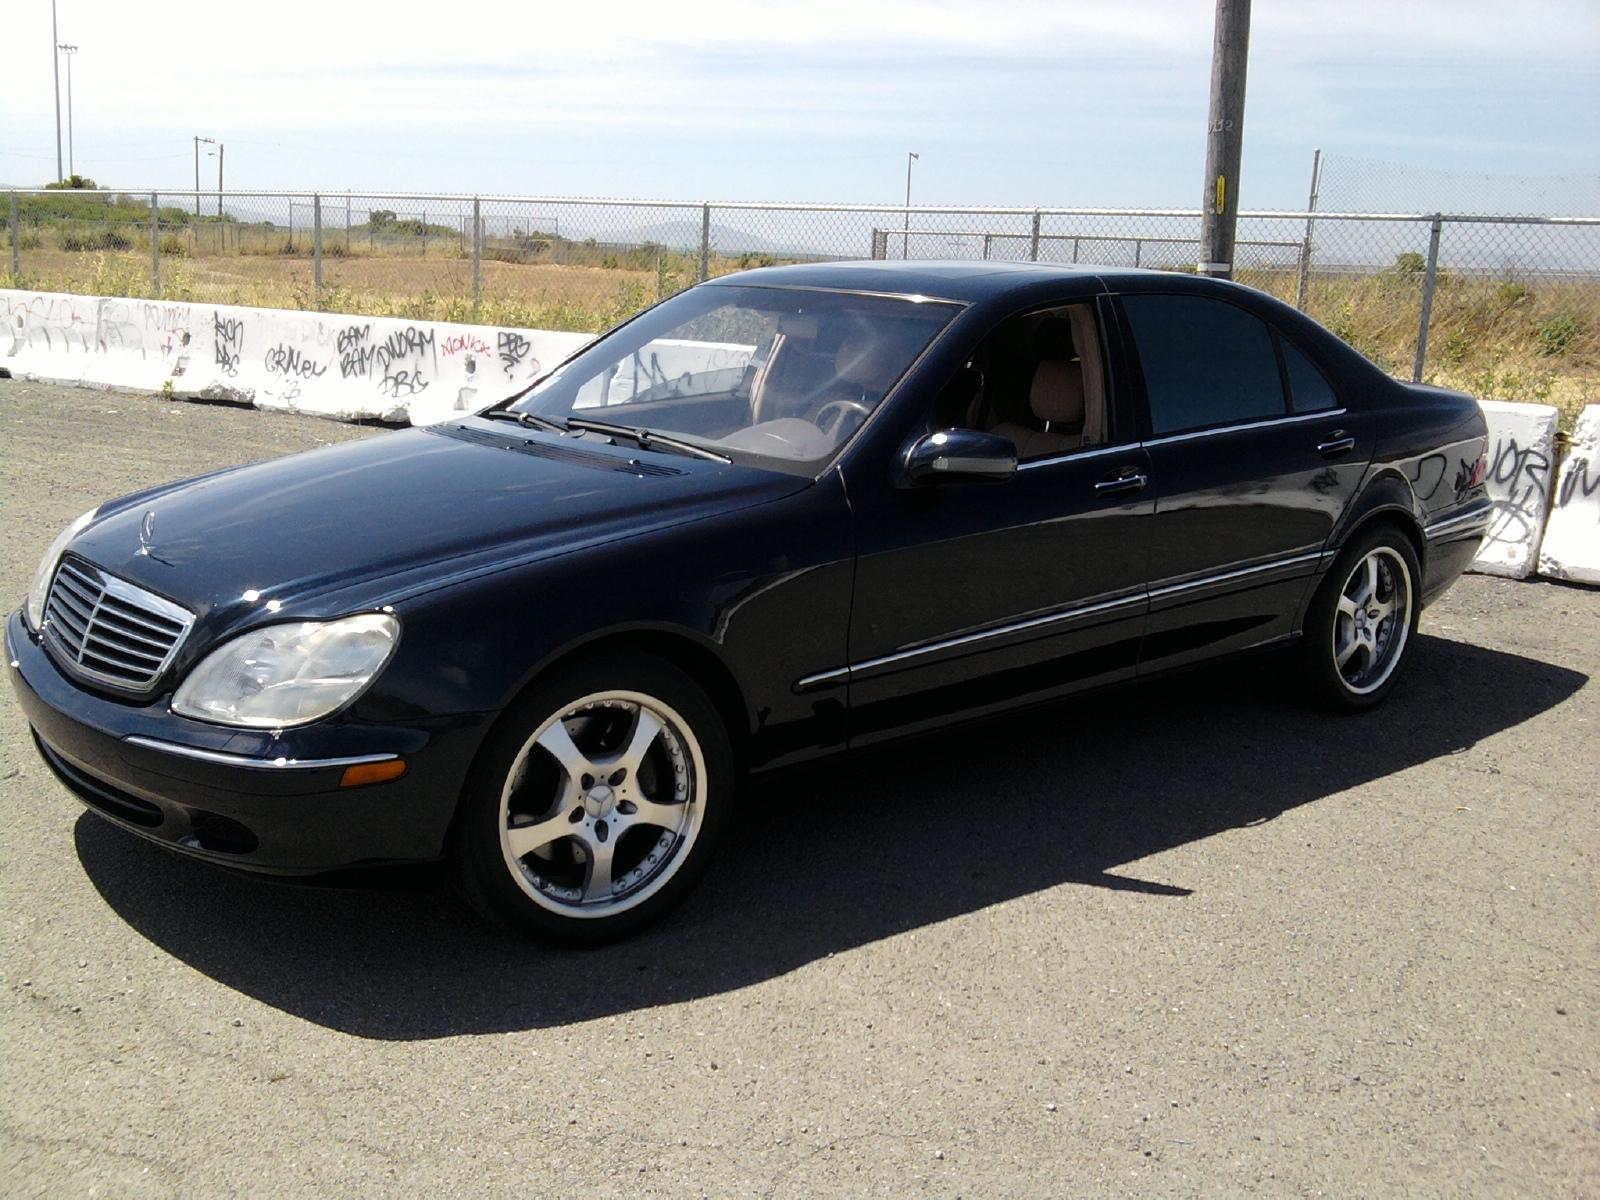 knookonly1 39 s 2002 mercedes benz s class s500 sedan 4d in